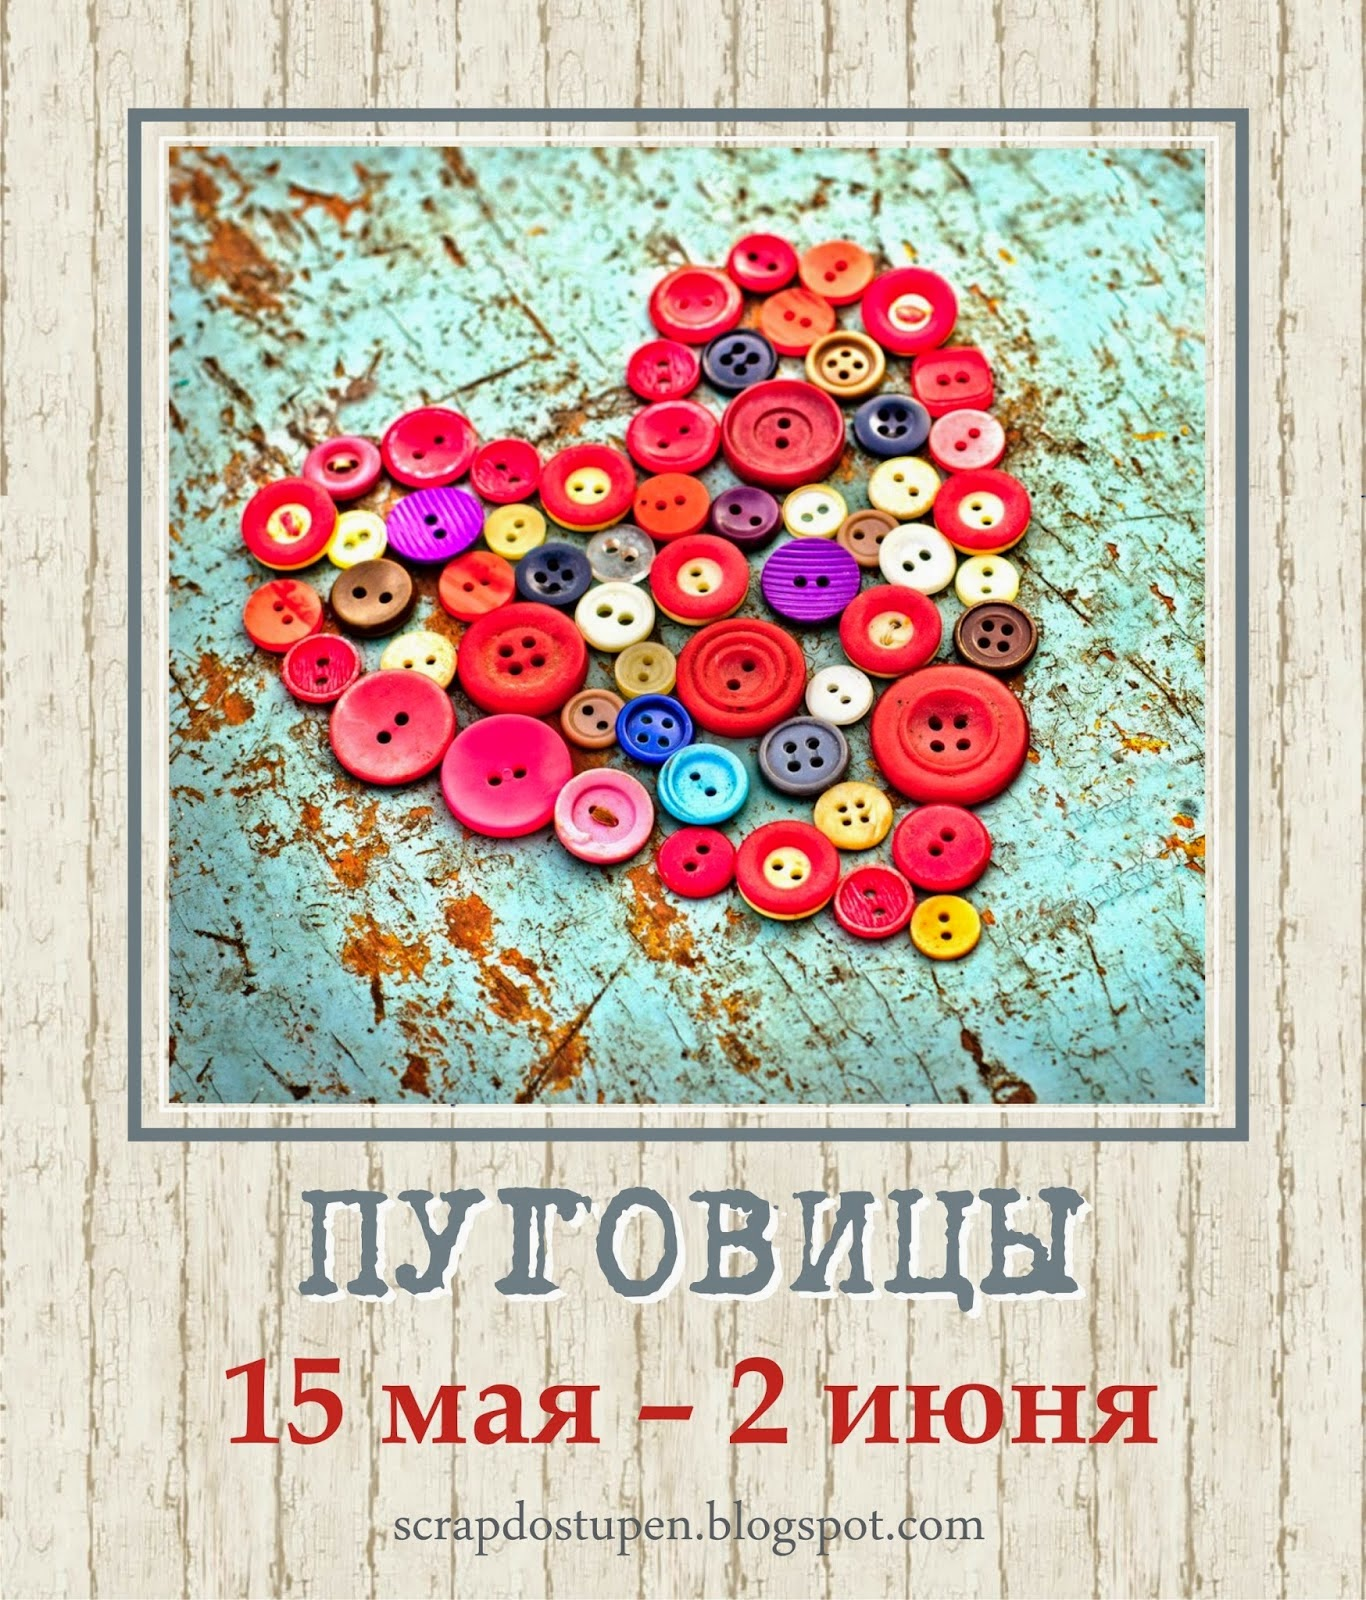 http://scrapdostupen.blogspot.ru/2014/05/blog-post_15.html